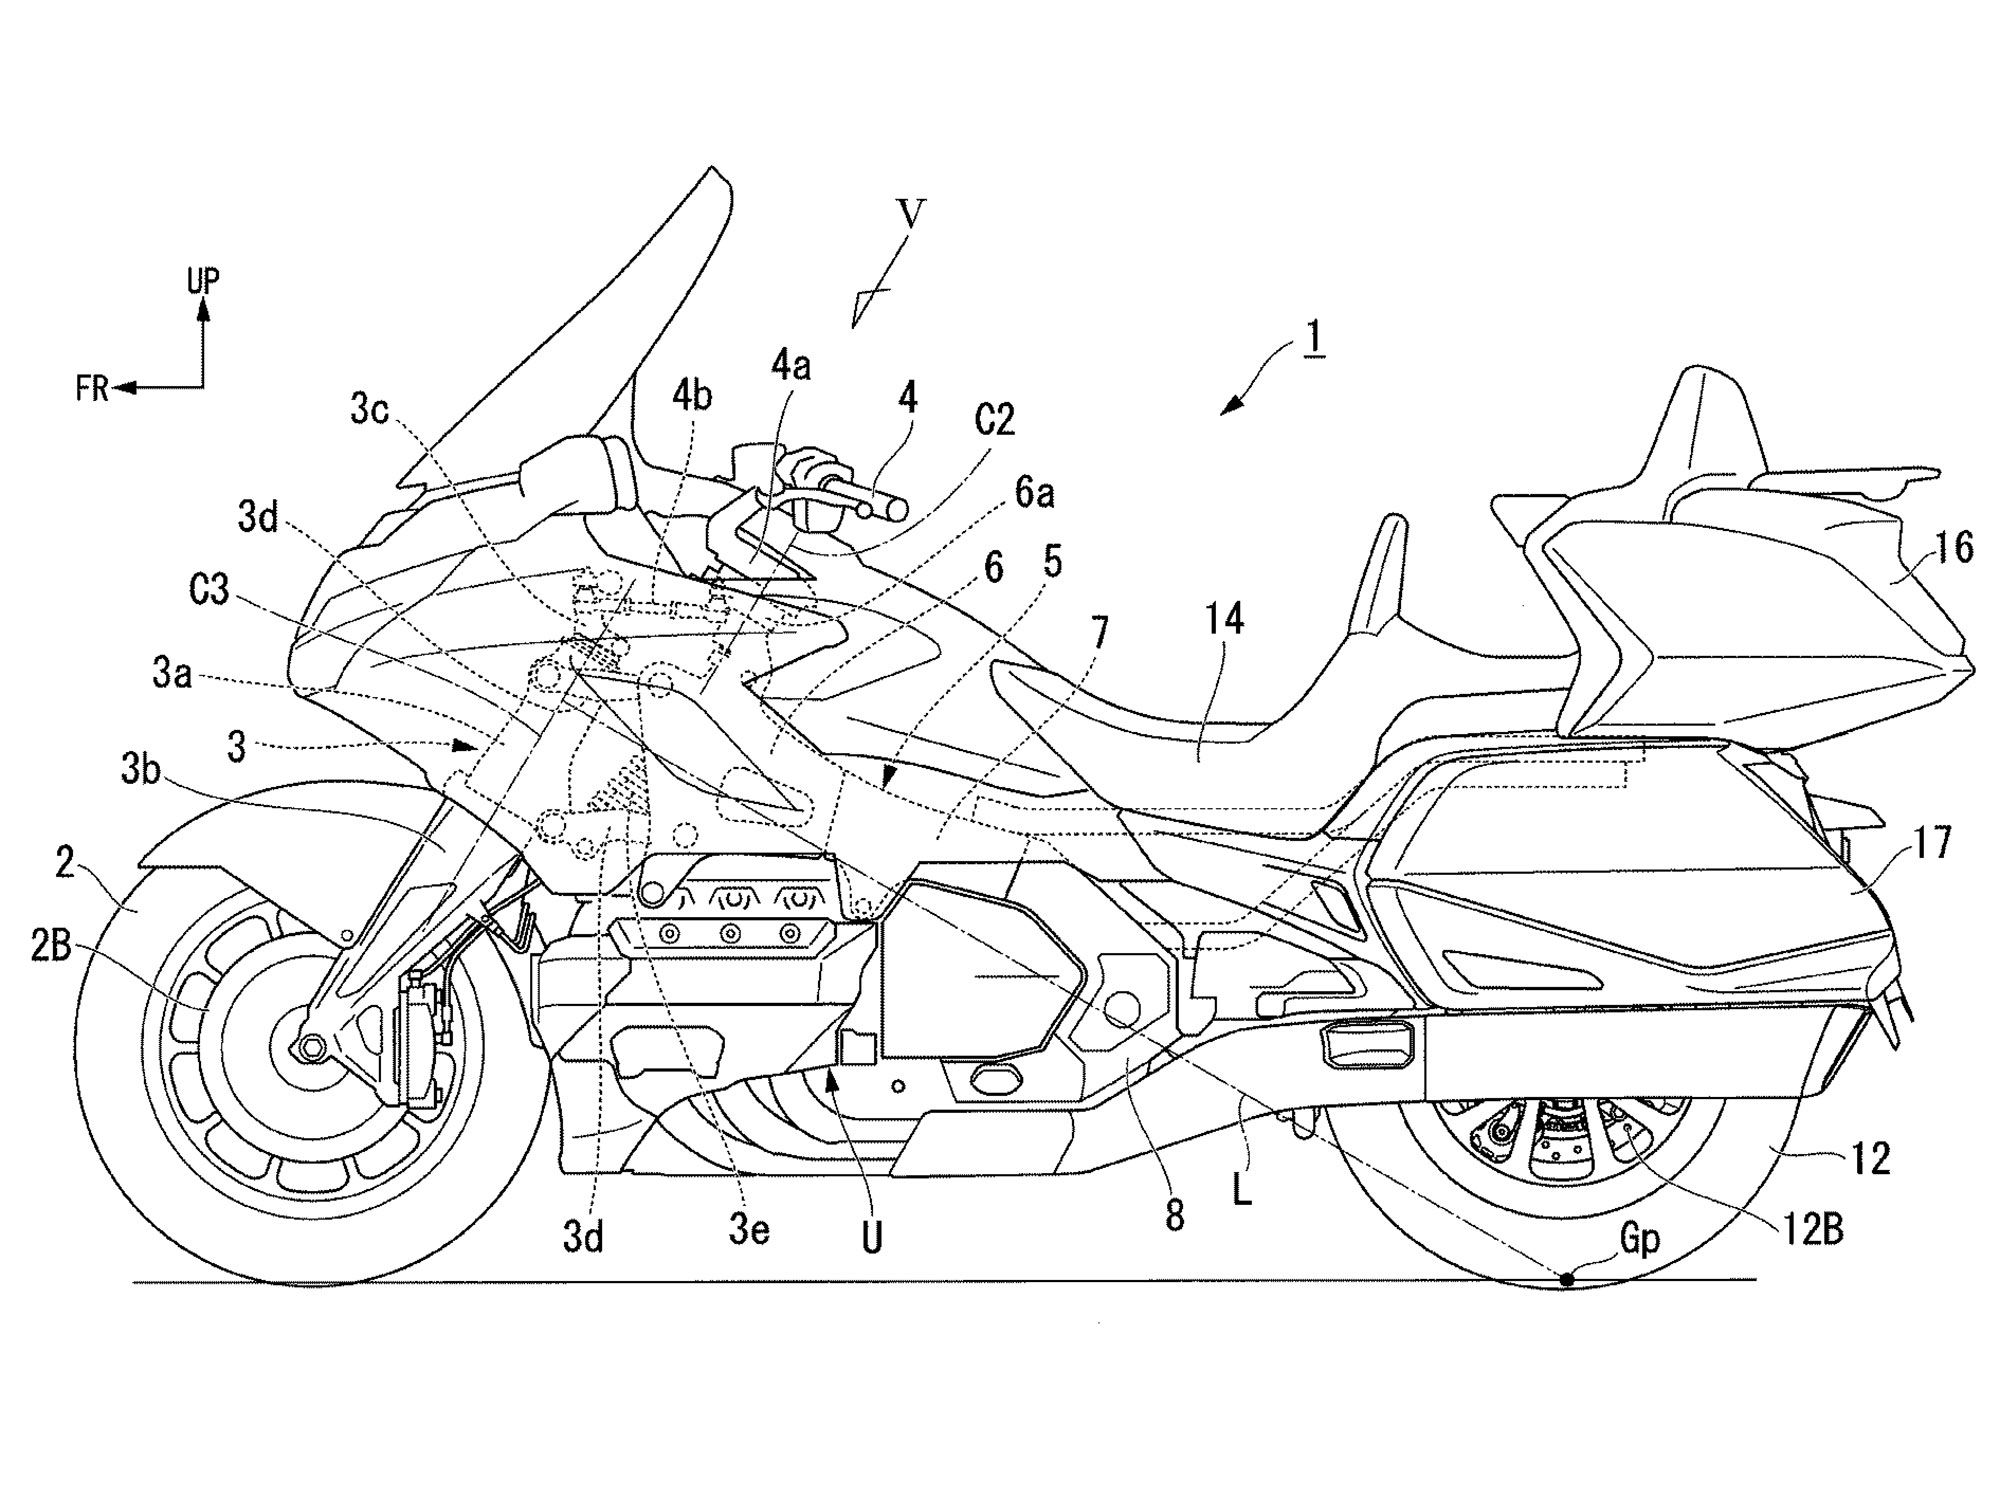 Honda Is Developing a Steering Assist System for Bikes